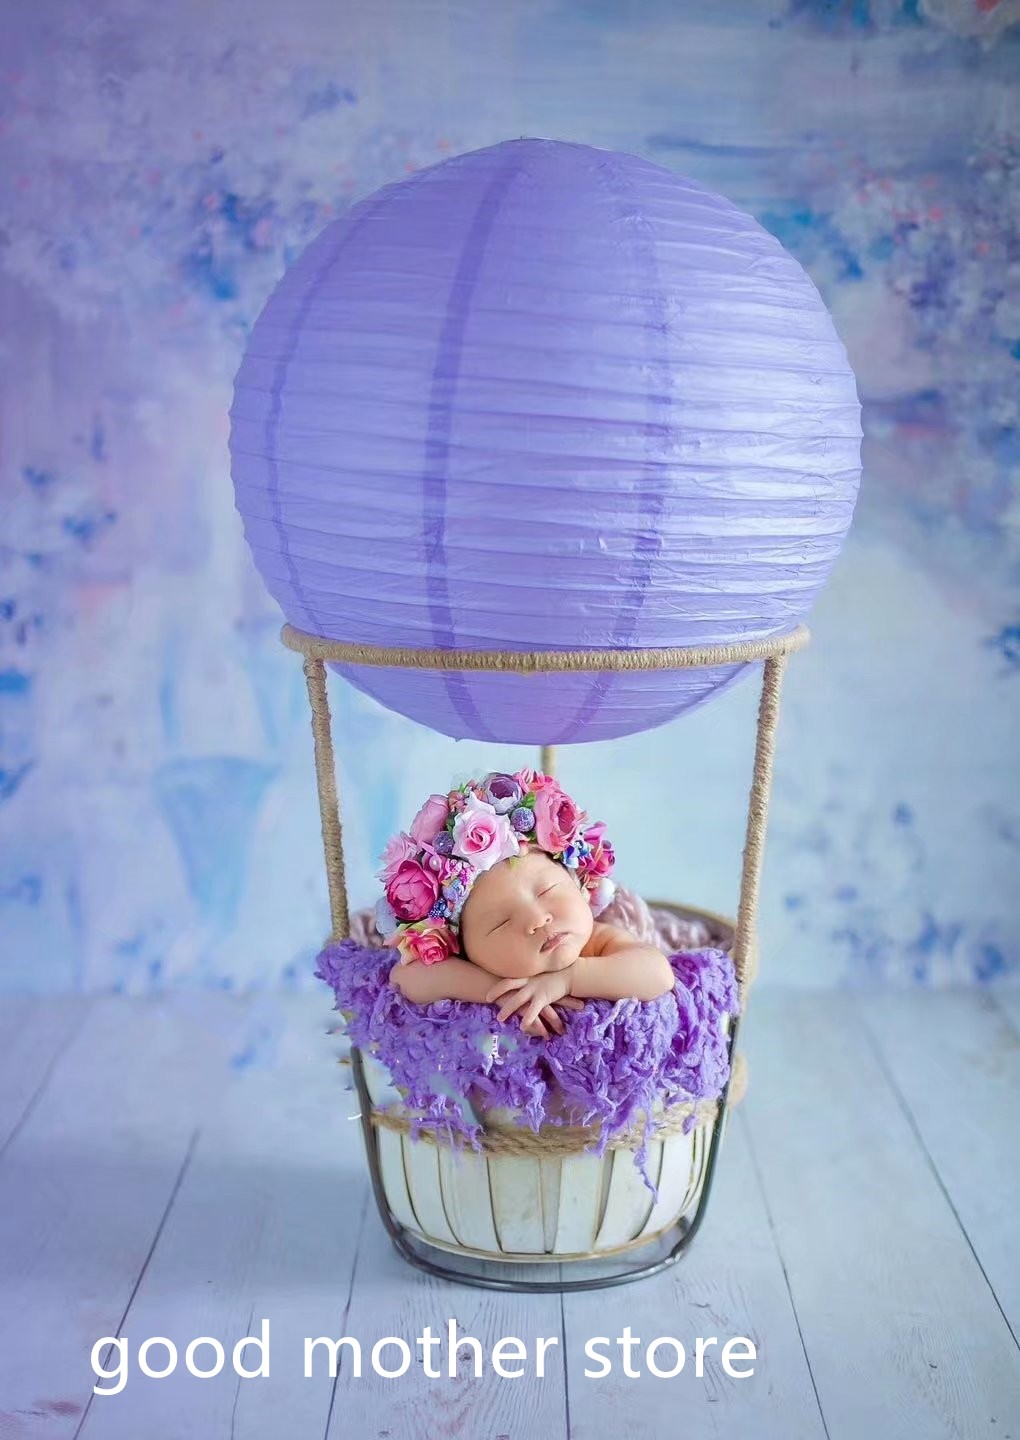 Creative Balloon Props For Newborn Photography Props To Decorate Cute Baby Studio Accessories Props